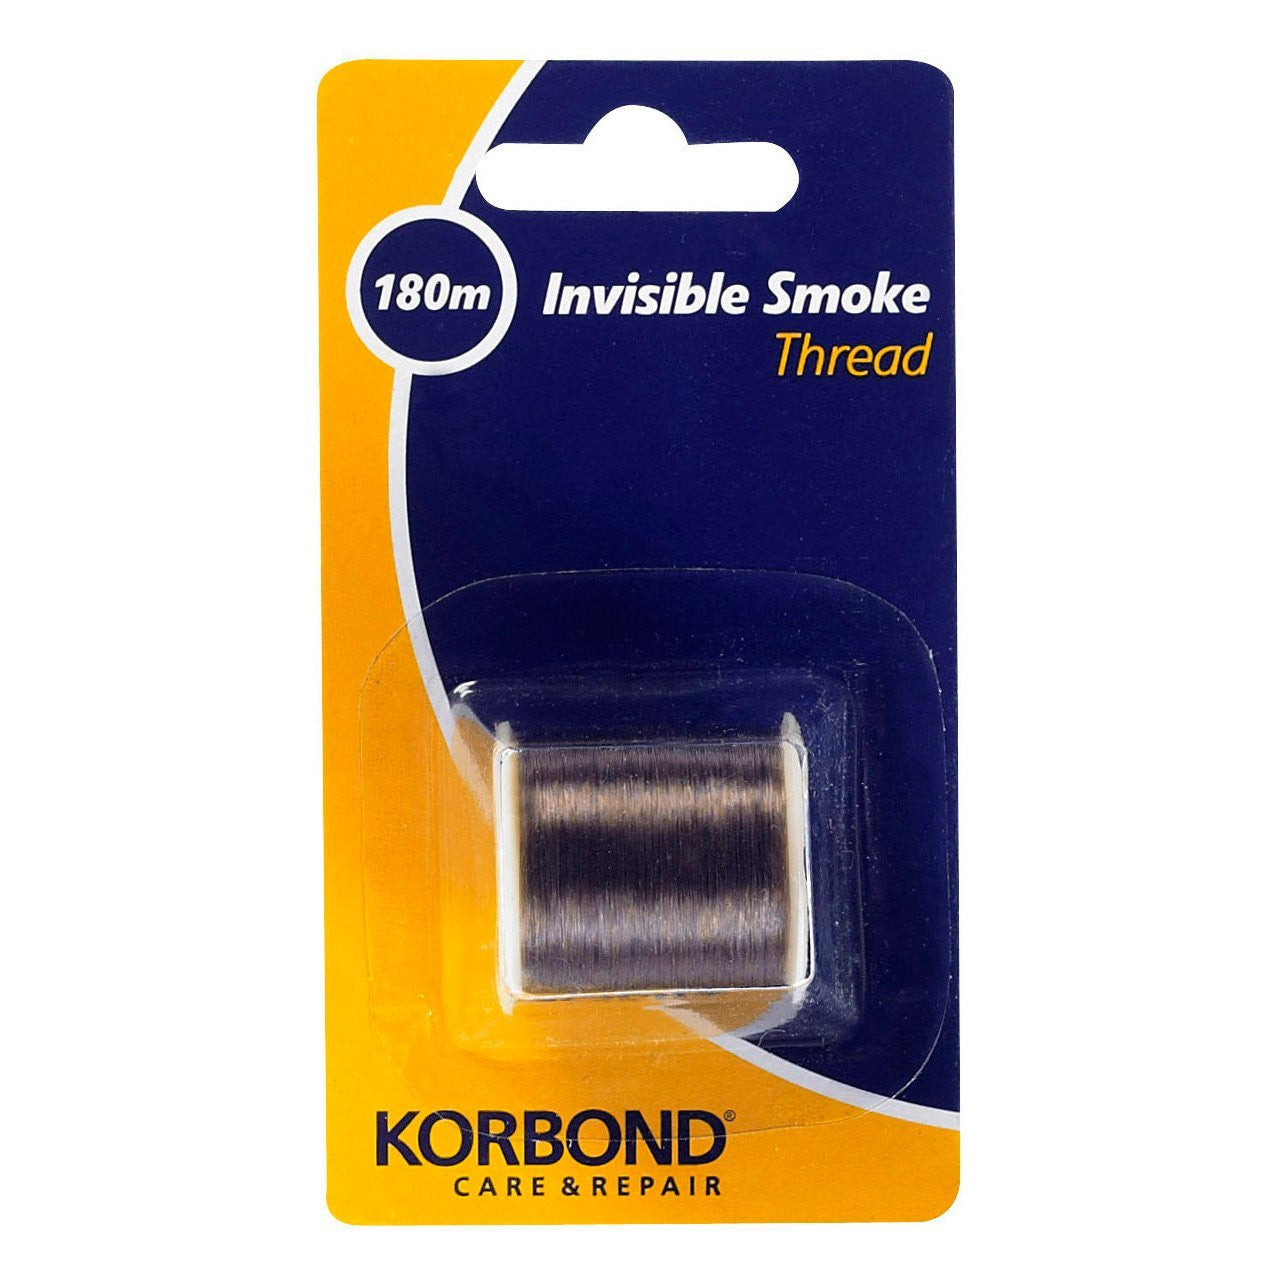 Korbond - Invisble Smoke Thread - 180 Meters - RKL Tools & Hardware